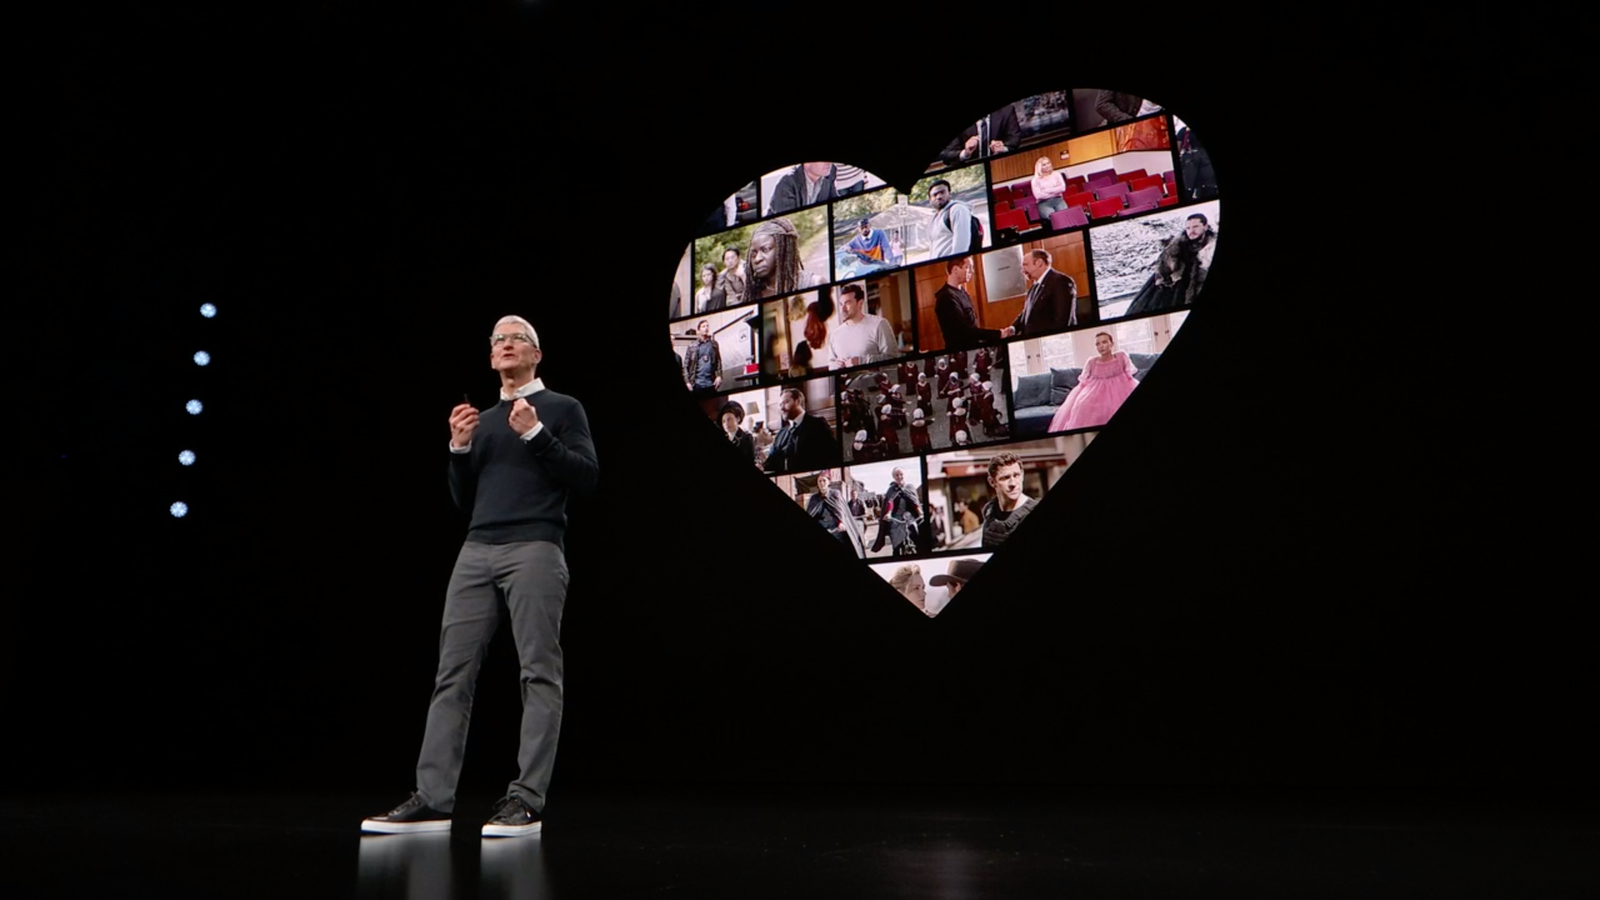 The Most Important Announcements from Apple's 'Show Time' Event